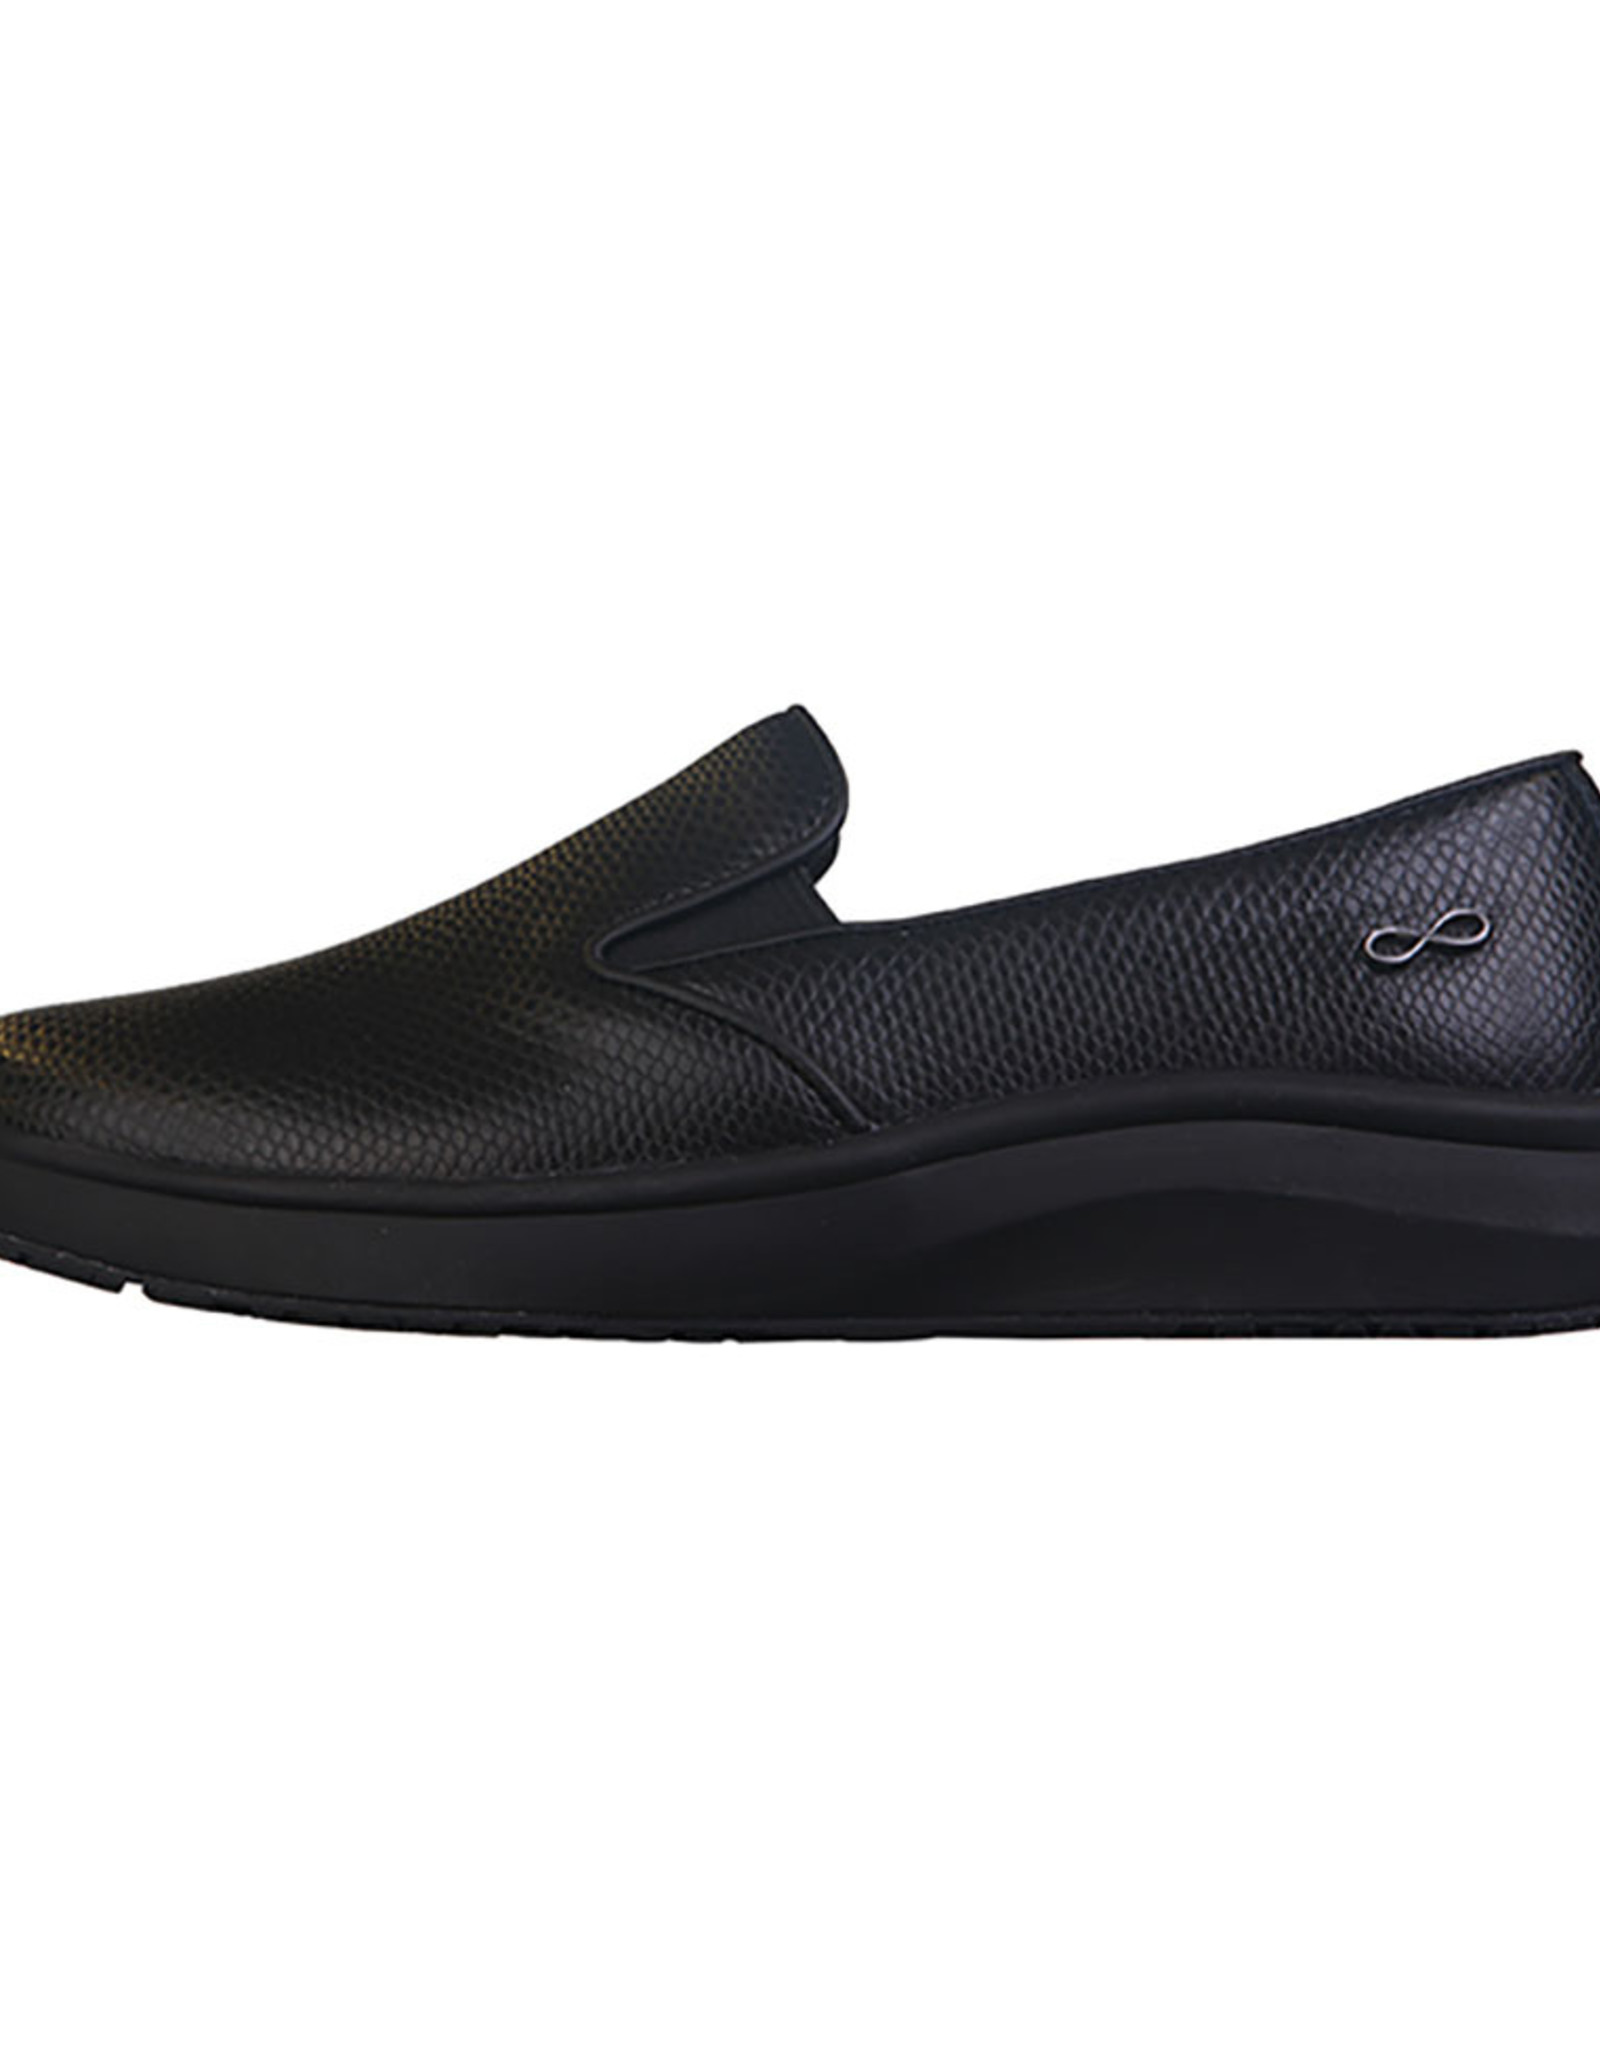 Cherokee Infinity Infinity Footwear Lift - Lift Shoes-Women's